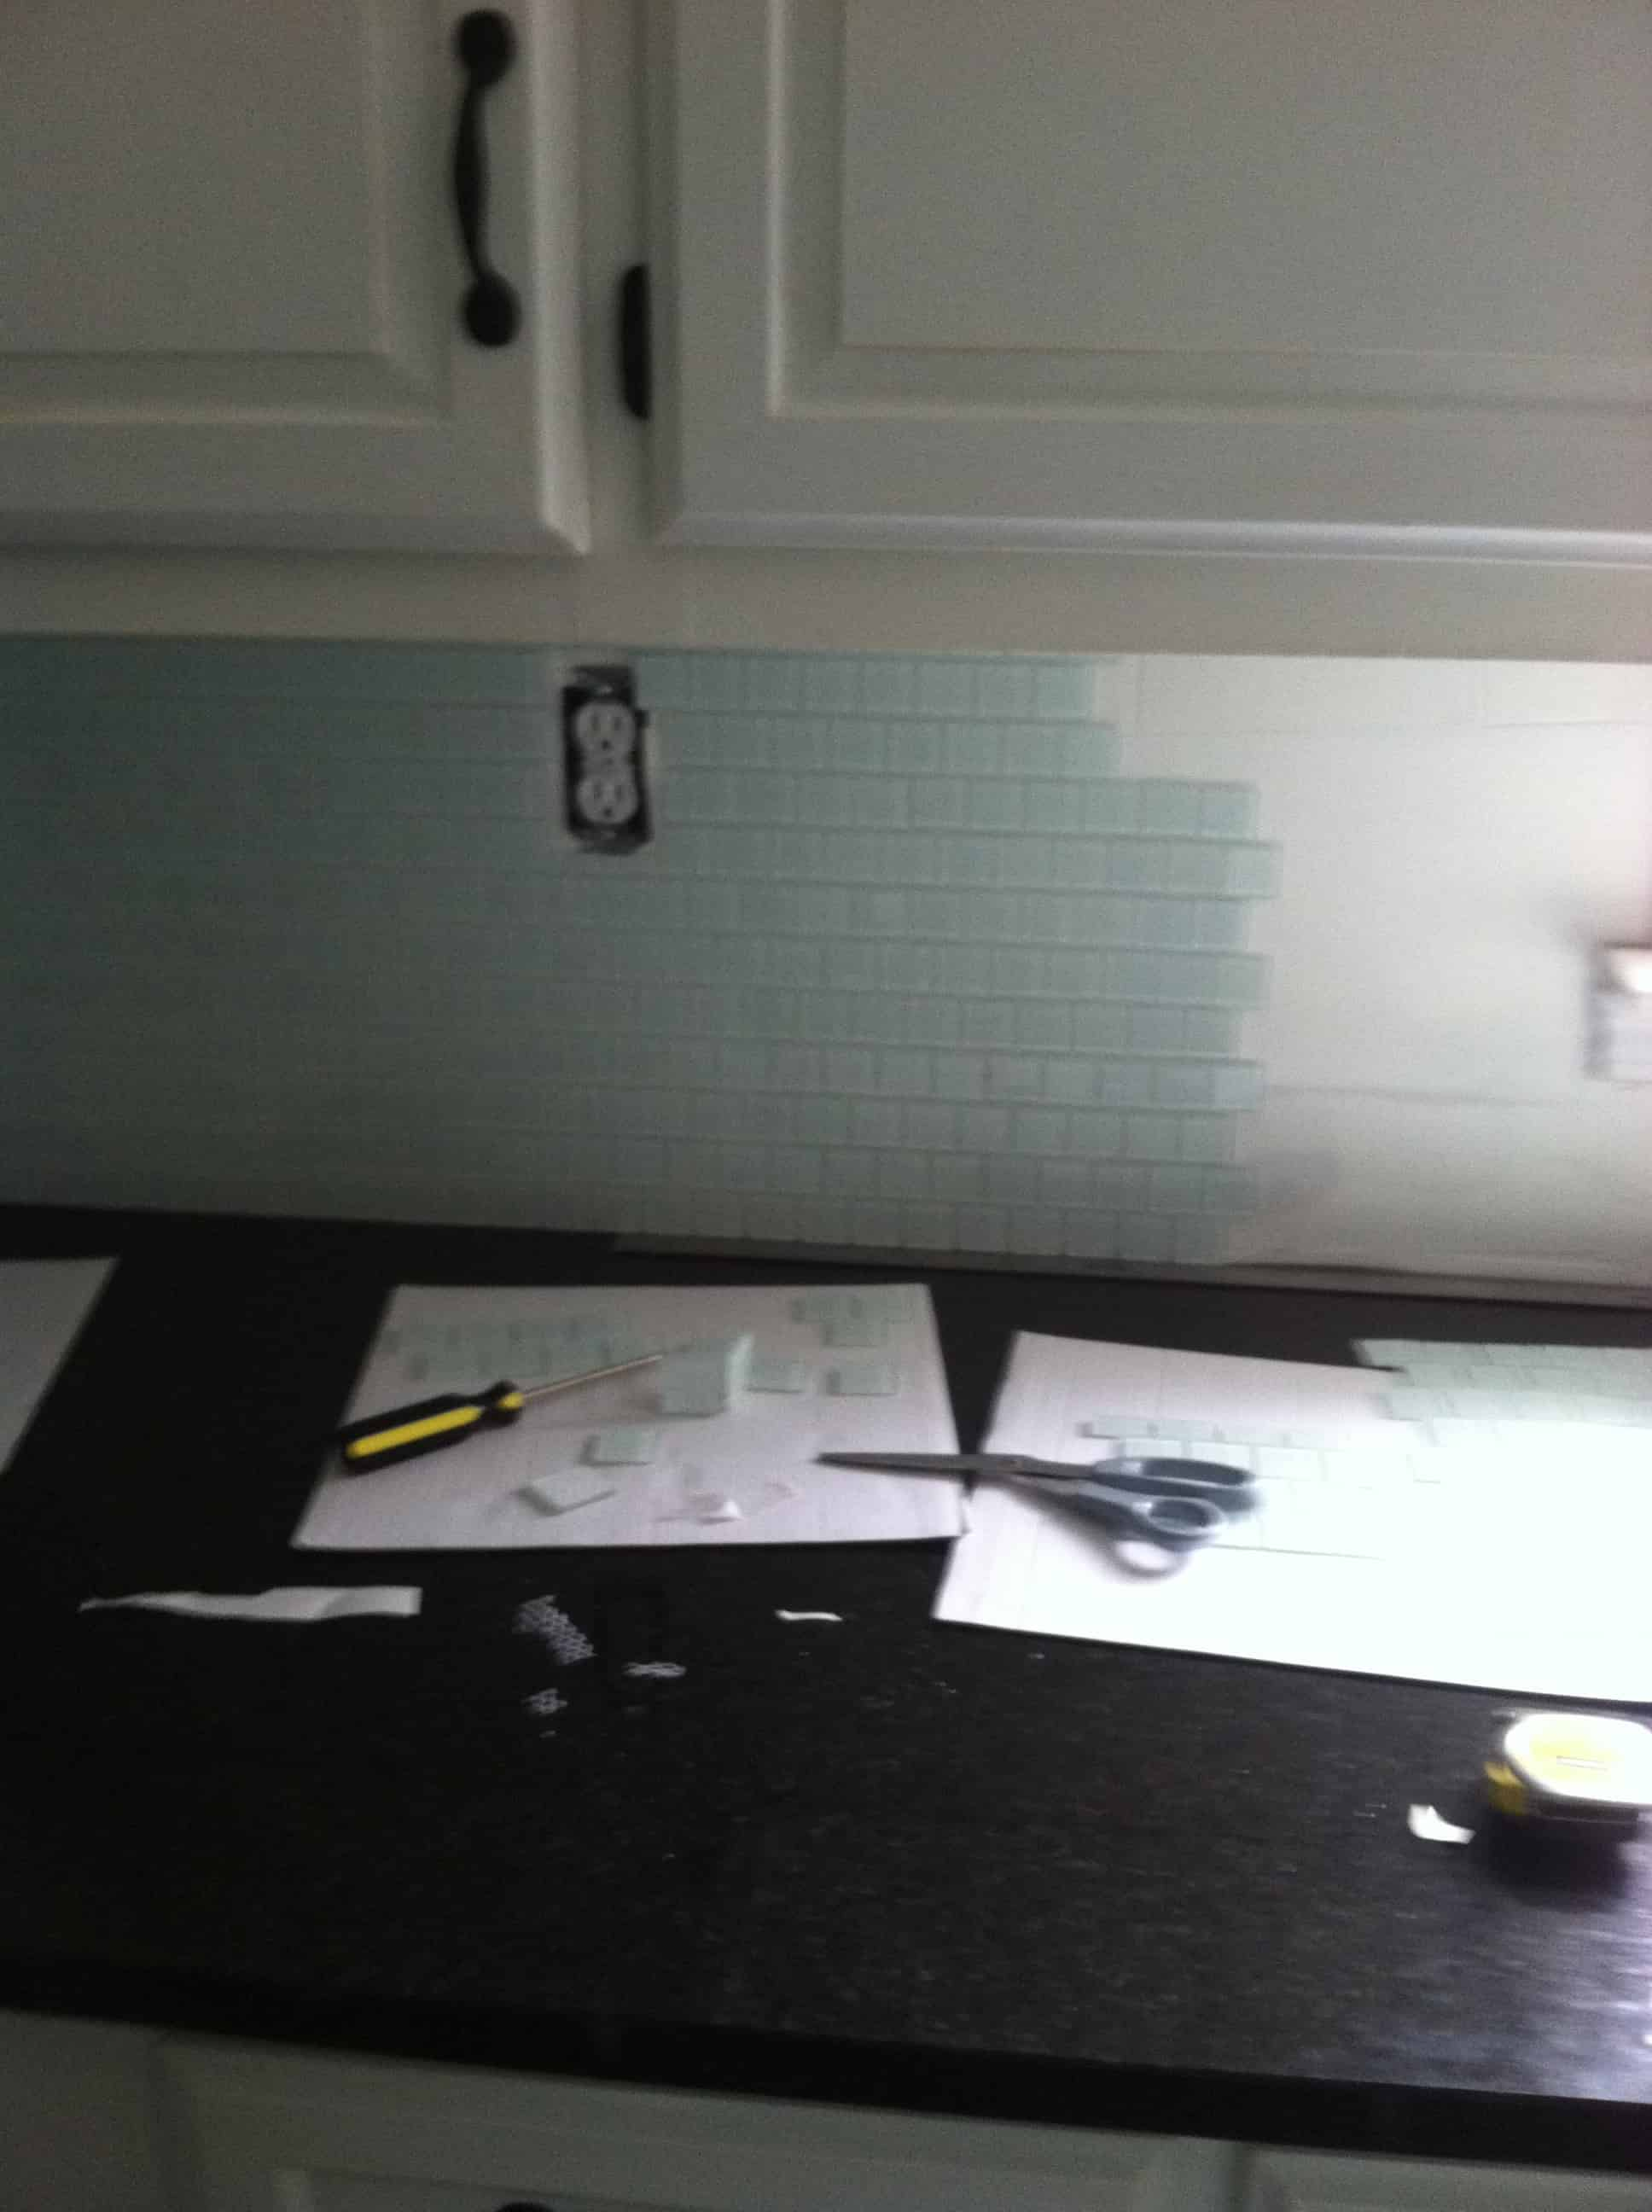 Glass tile sheets being cut to fit around a wall outlet during backsplash install